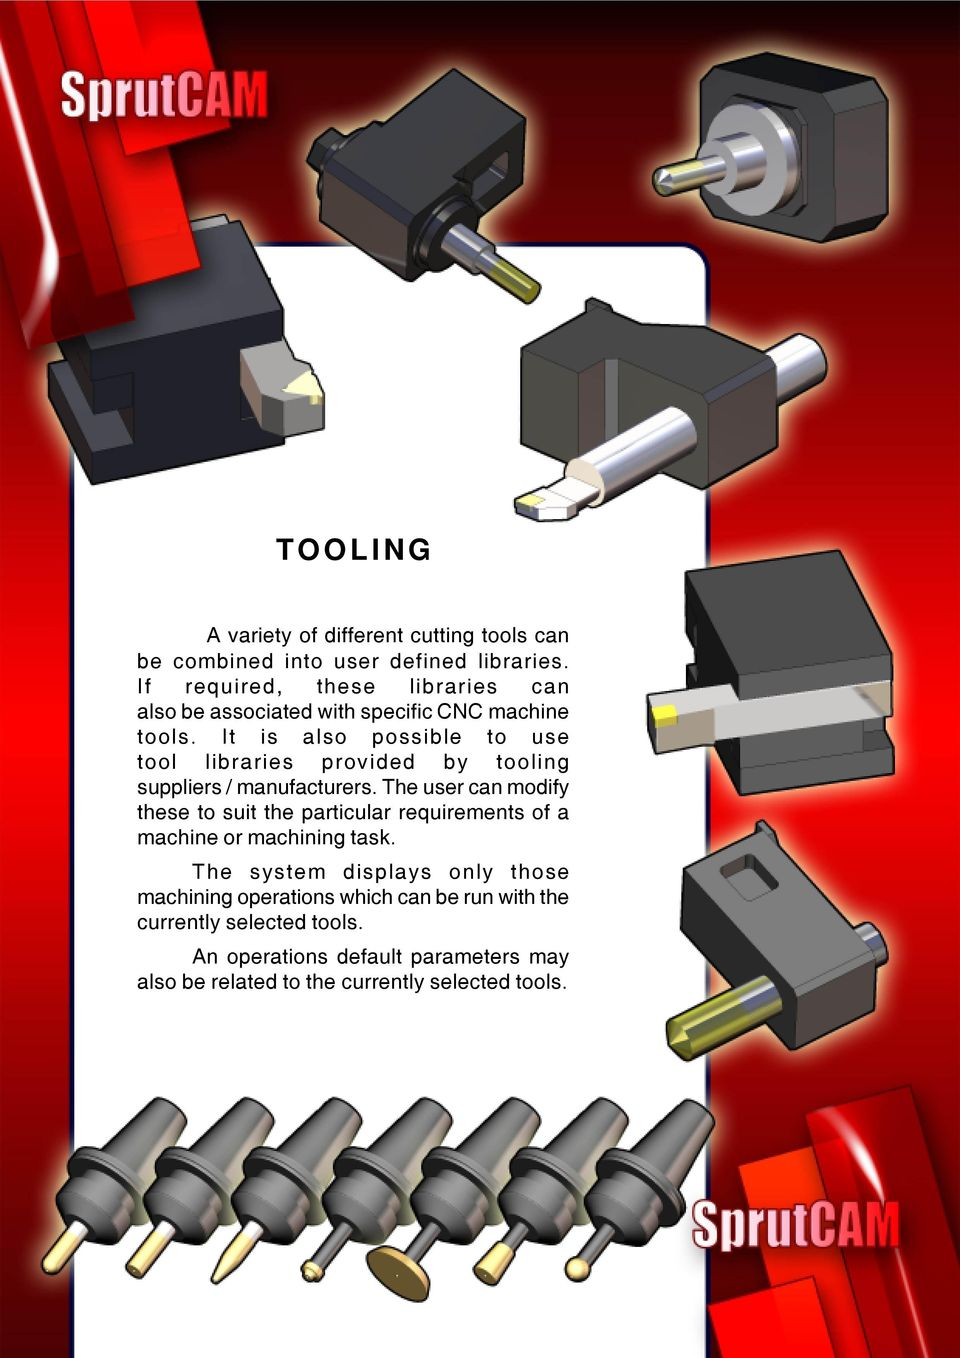 It is also possible to use tool libraries provided by tooling suppliers / manufacturers.